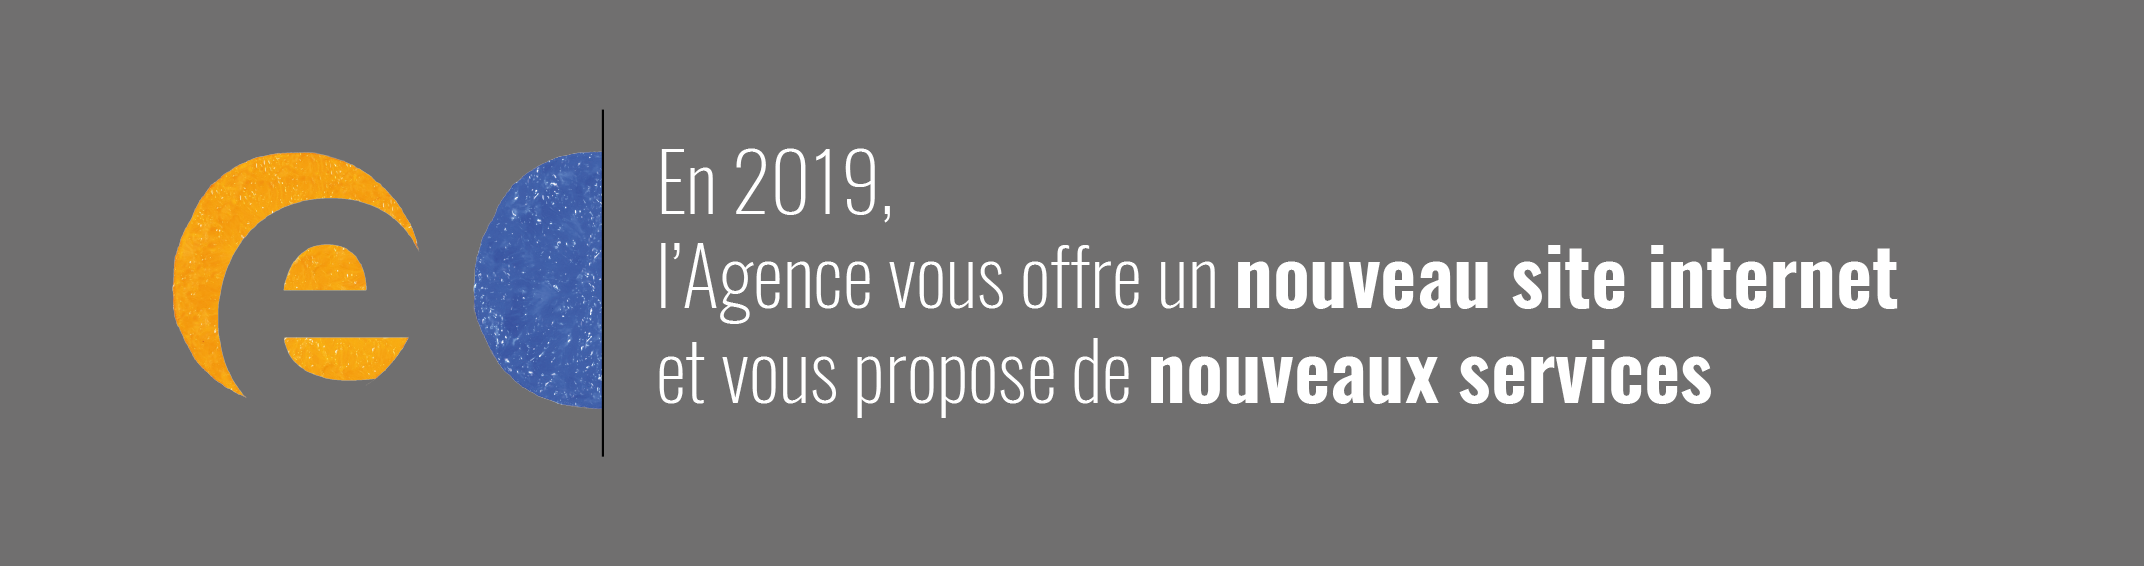 annonce 2019 FB